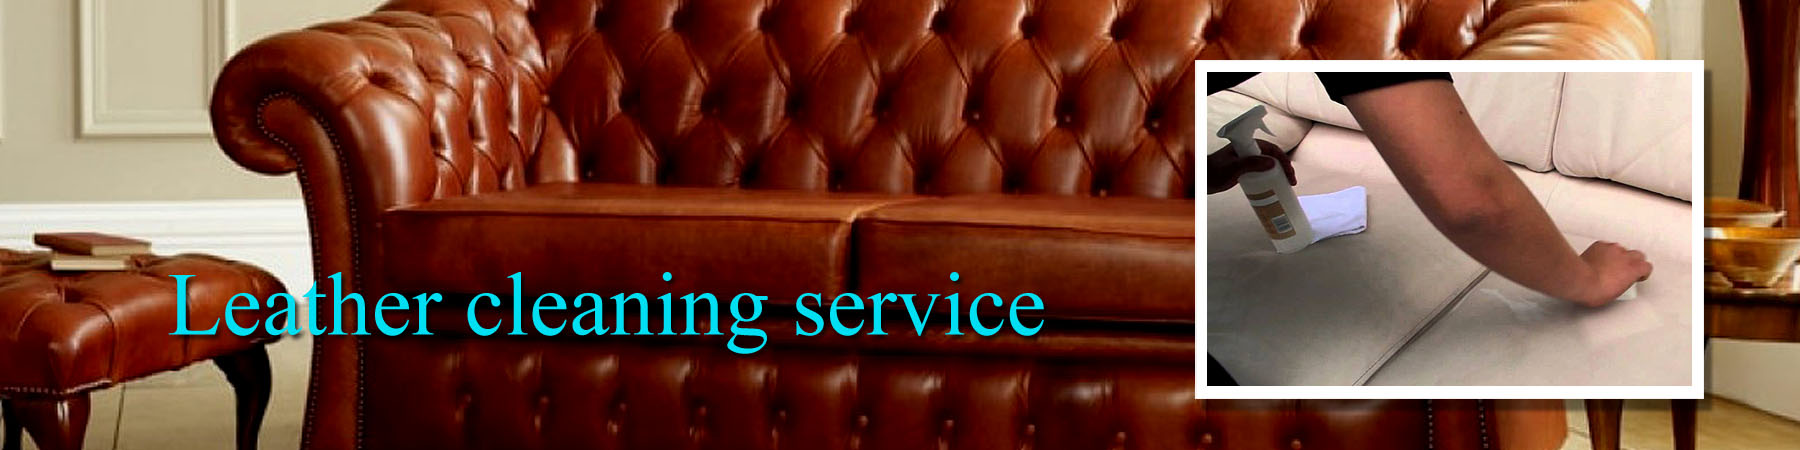 JR Leather Sofa Cleaning Stone J R Cleaning